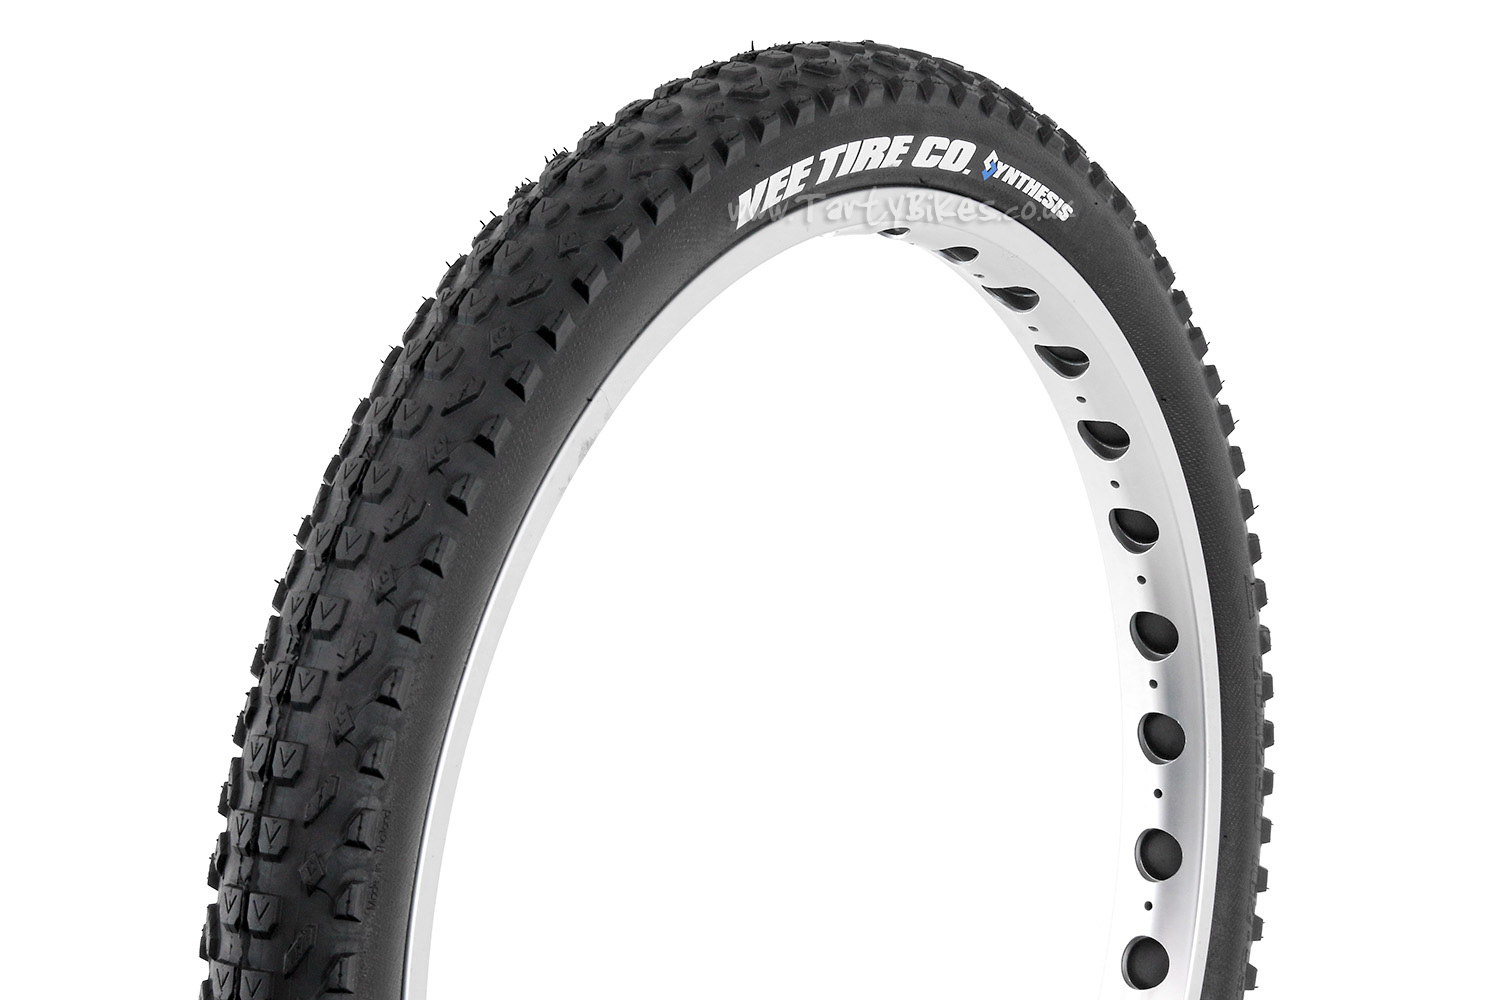 VeeTireCo Trax AM WAW Synthesis Edition Rear 26""